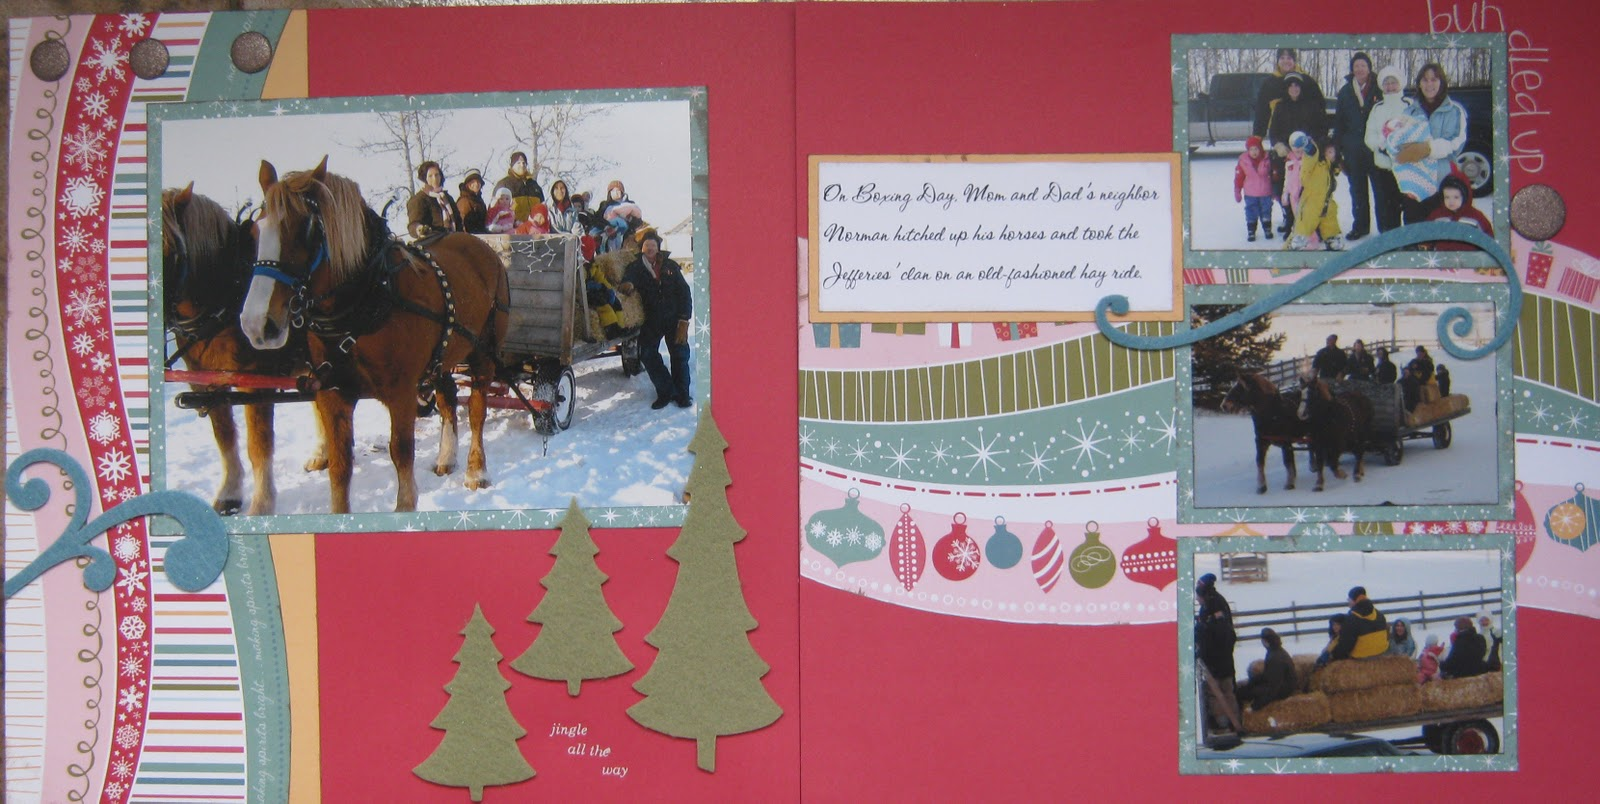 Scrapbook ideas niagara falls - I Used My Twenty Pages For All My 2008 Christmas Pictures The Whole Month Of December Here Are Four Of The Layouts